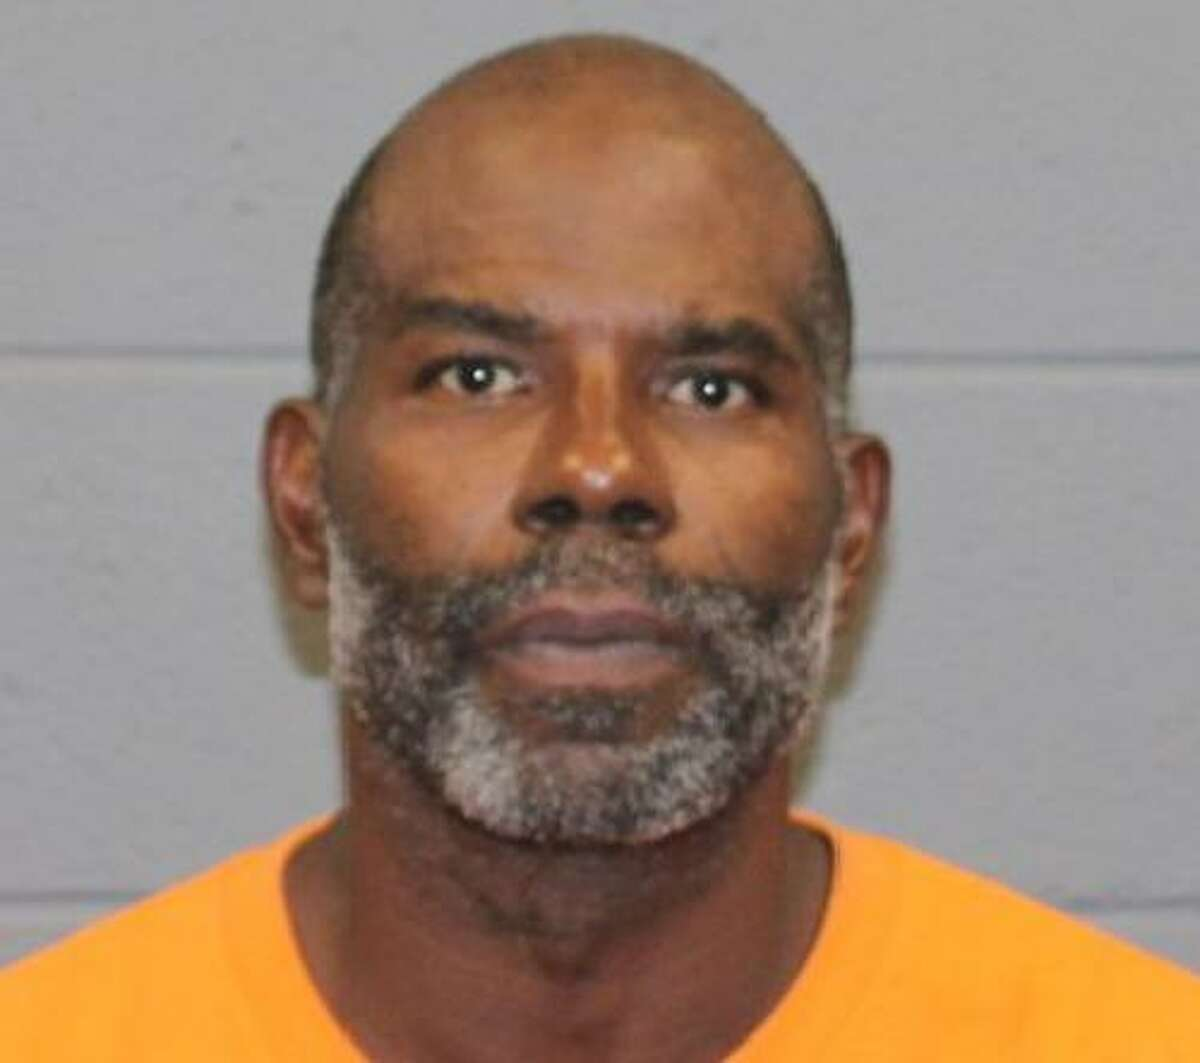 Bobby Cooke, 54, was charged with murder, carrying a pistol without a permit, criminal possession of a pistol or revolver, criminal use of a weapon, first-degree reckless engagement and illegal discharge of a firearm. He remains in custody on a $3 million bond, police said.